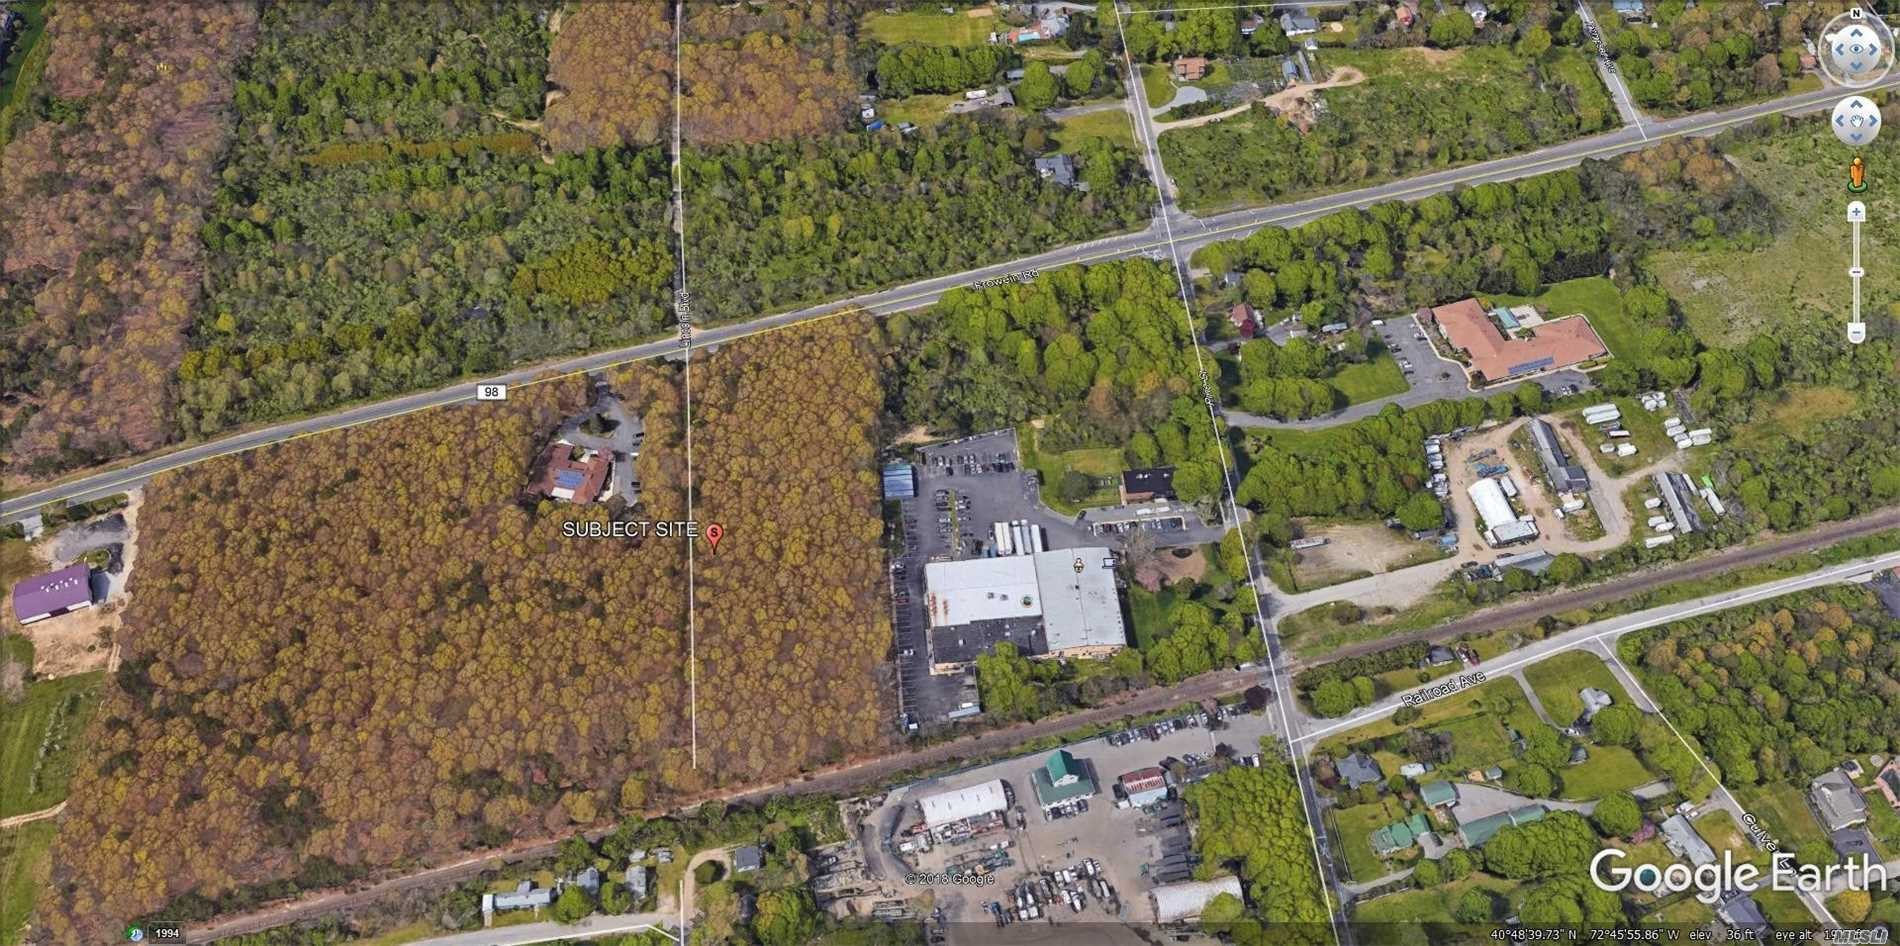 Land for sale in Pine/Frowein Rd, East Moriches, NY ,11940